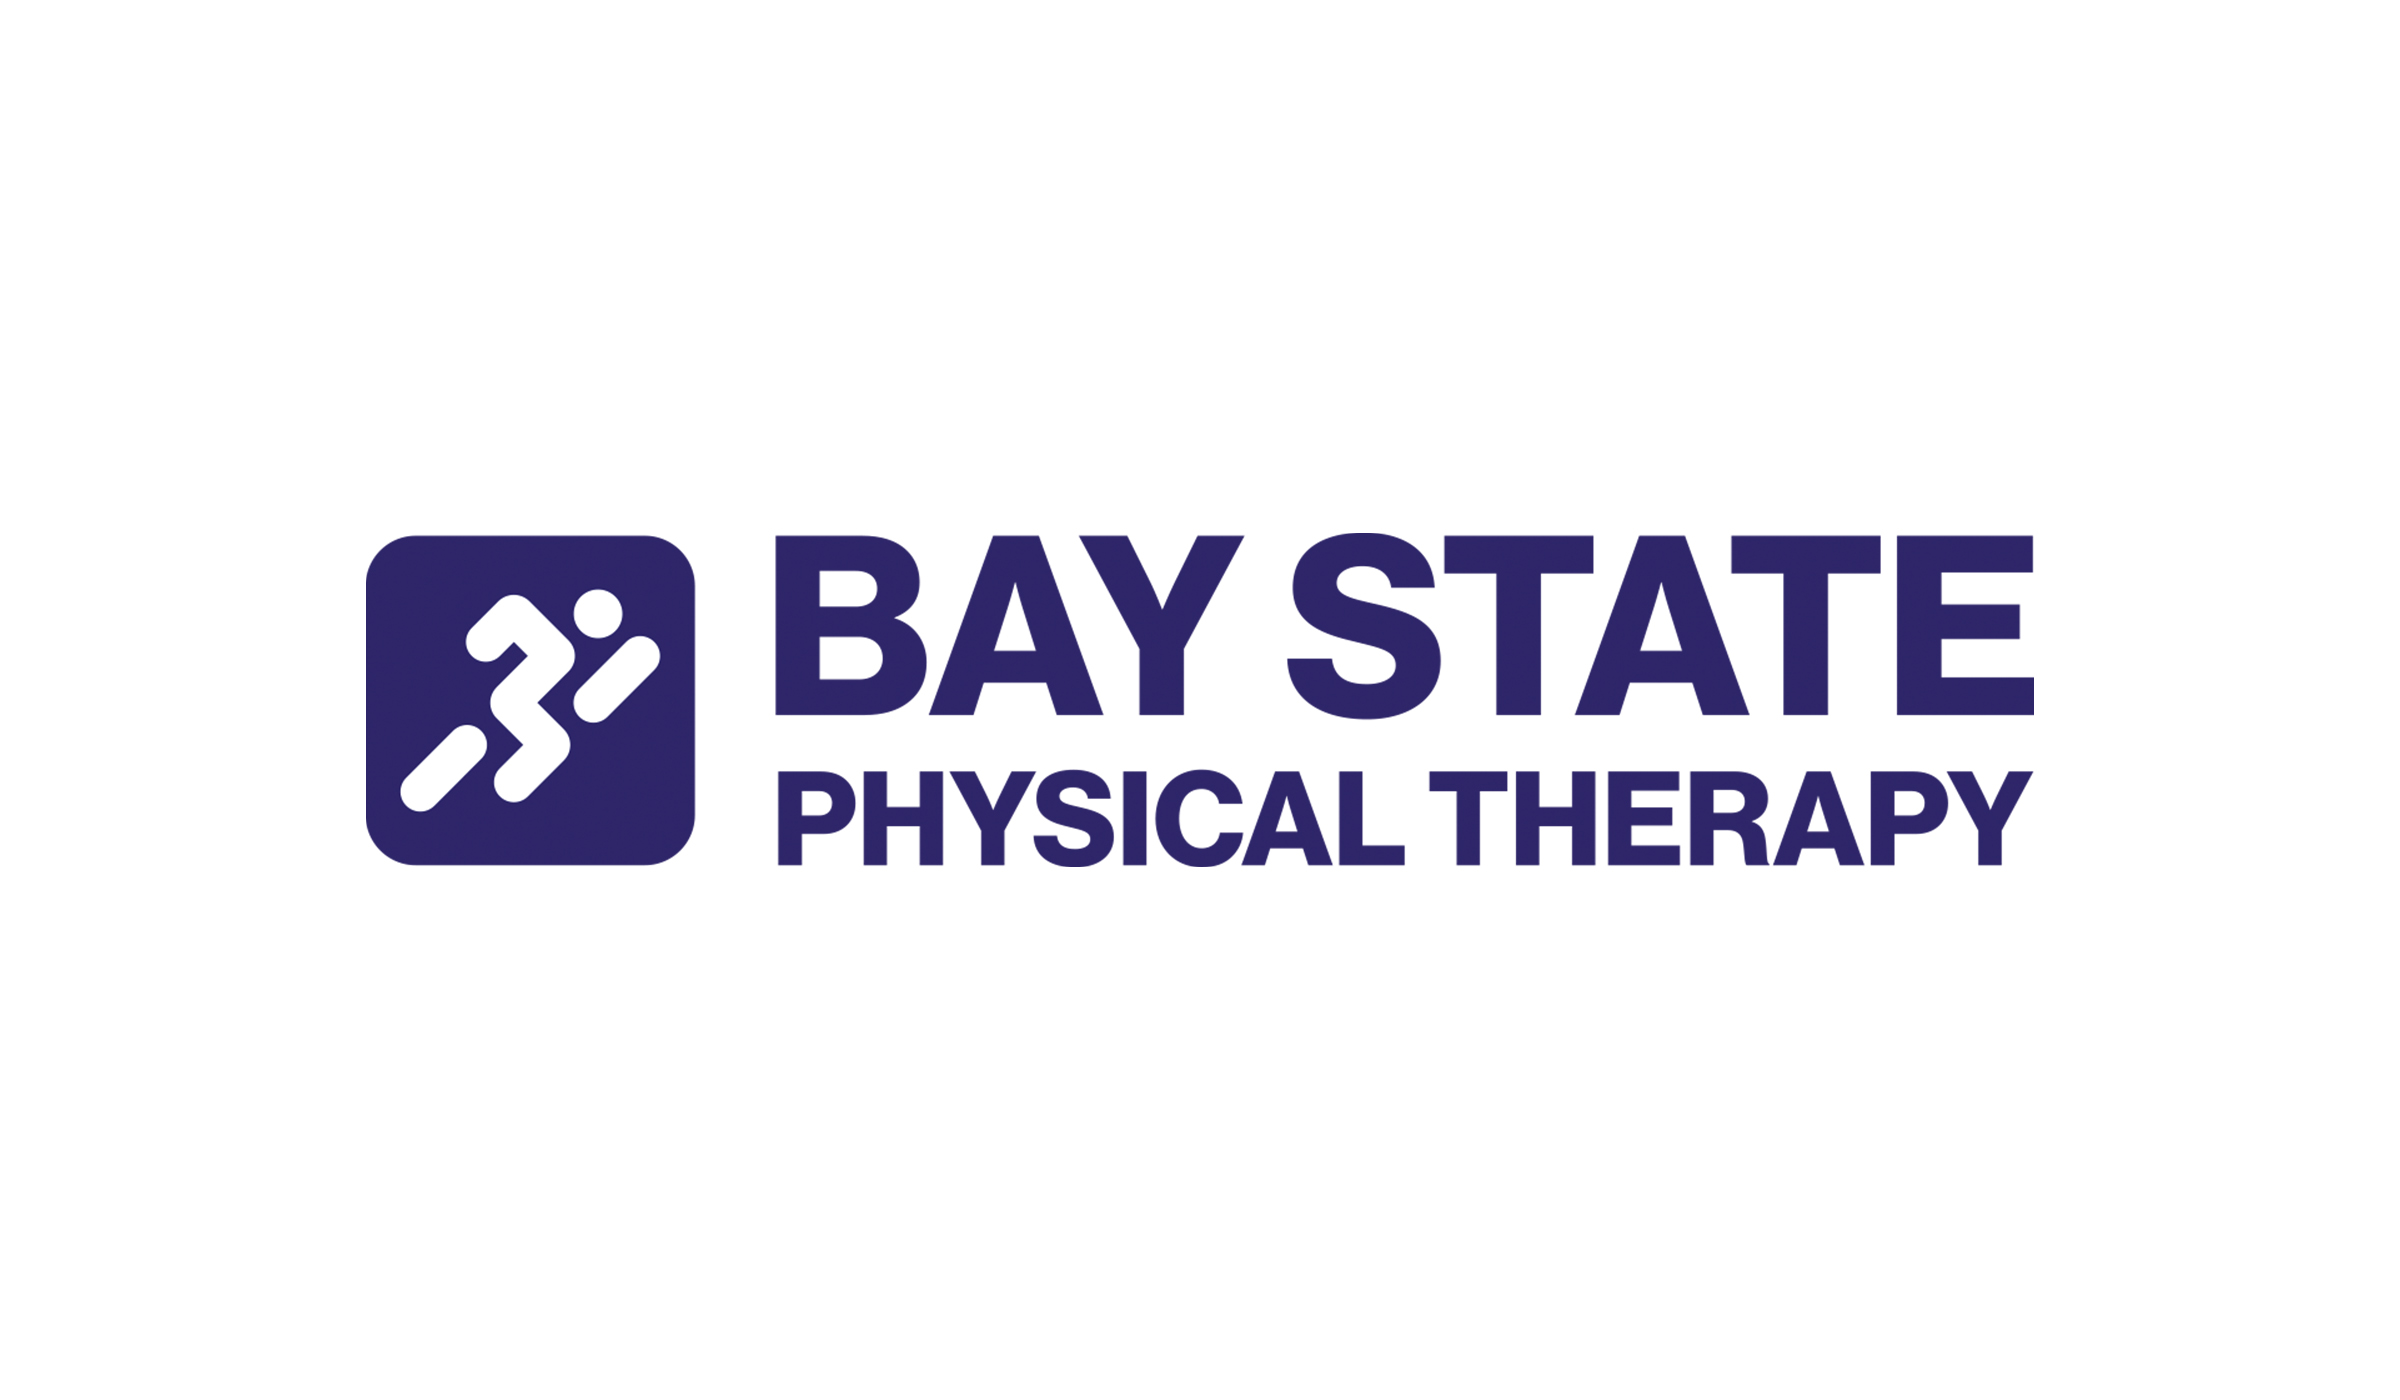 5 Exercises from Bay State Physical Therapy to Do With Your Resistance Band